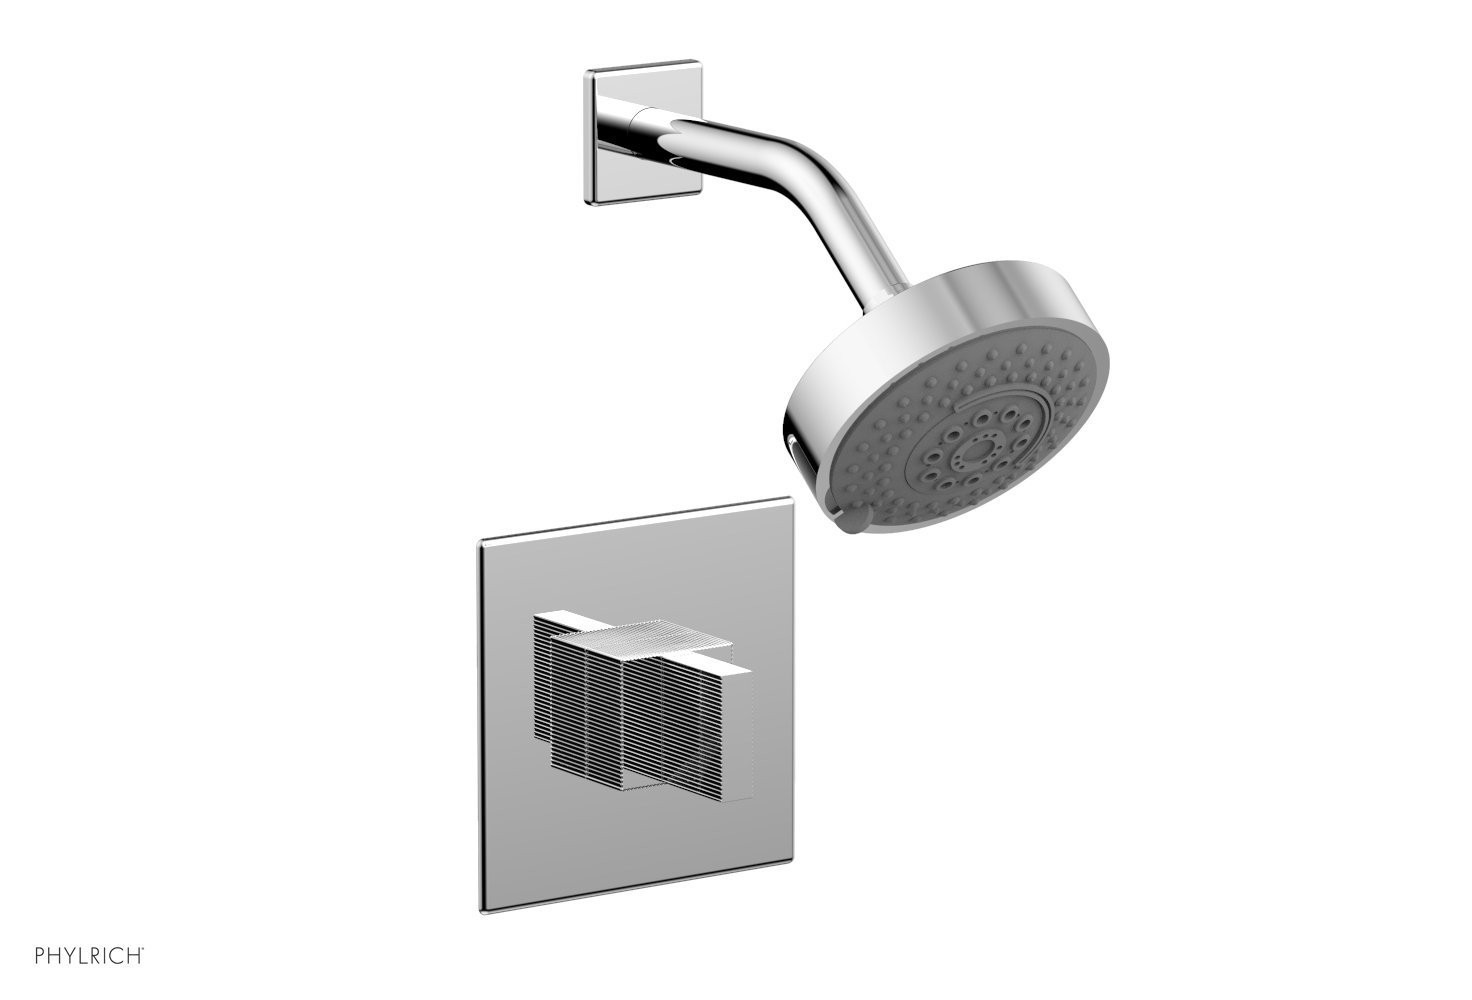 PHYLRICH 291-21 STRIA WALL MOUNT PRESSURE BALANCE SHOWER SET WITH BLADE HANDLE